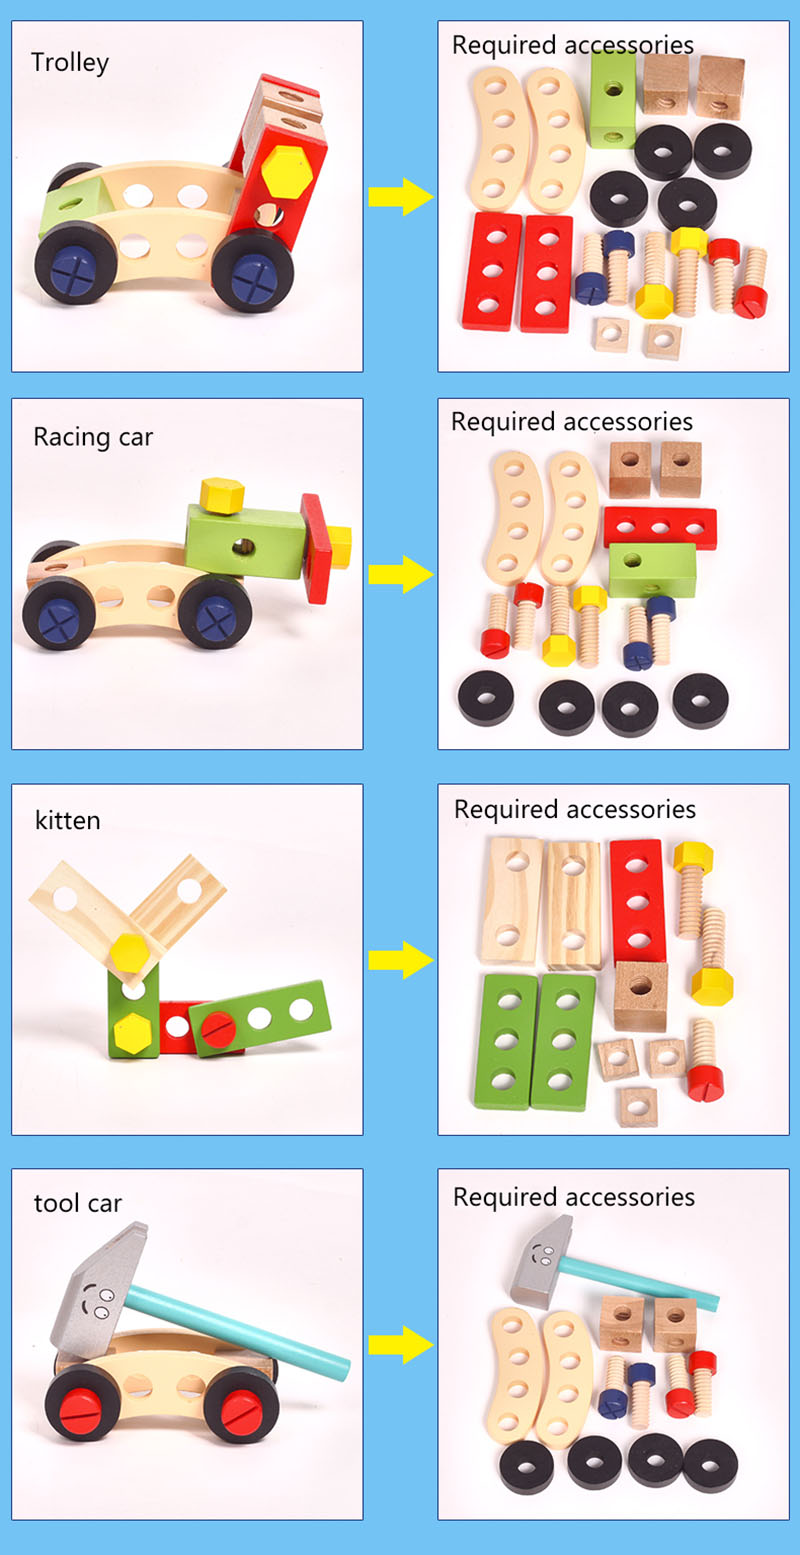 Kids Wooden Toolbox Pretend Play Set Educational Montessori Toys Nut Disassembly Screw Assembly Simulation Repair Carpenter Tool 12